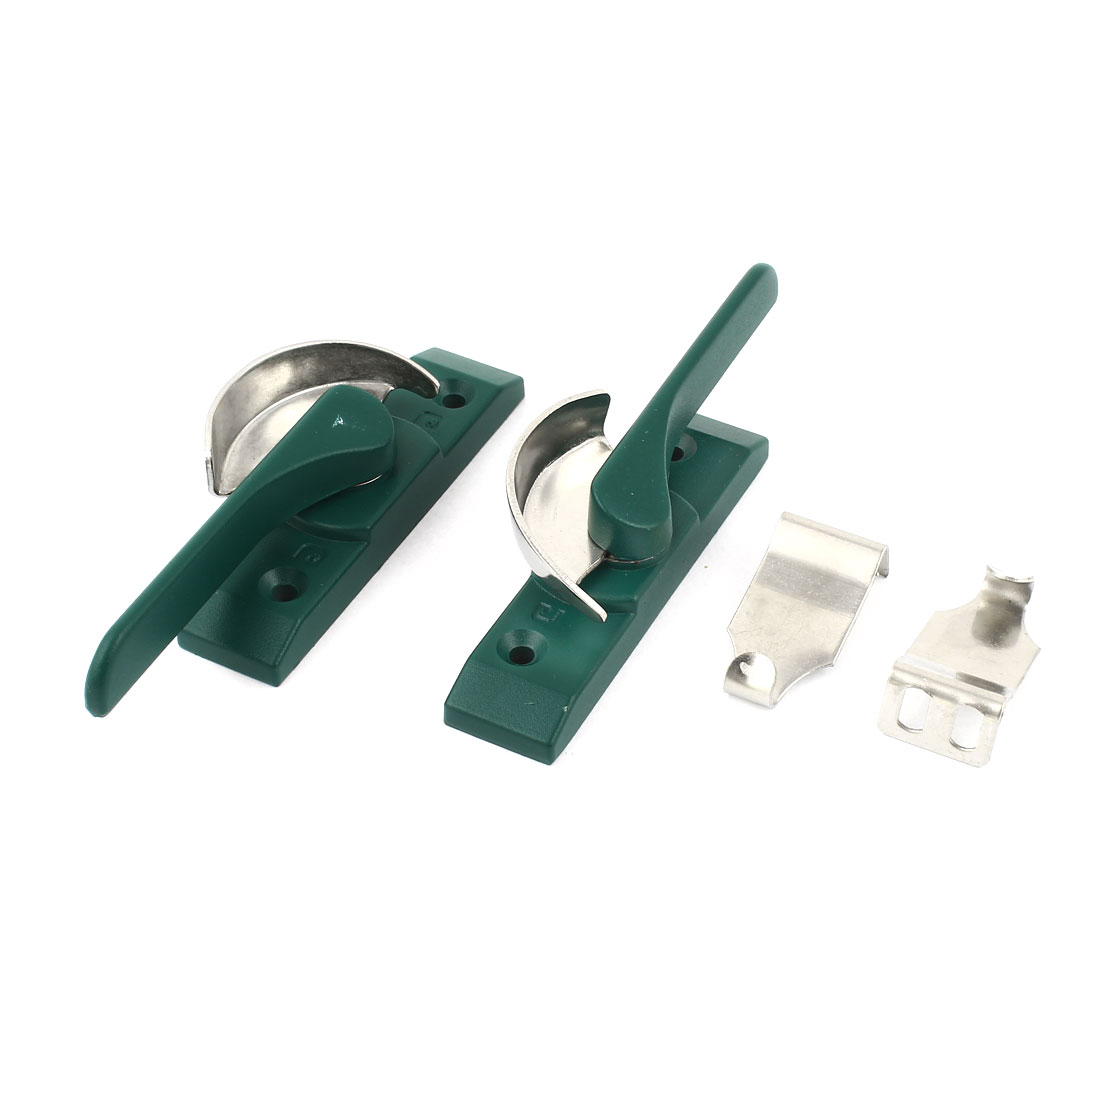 Pair Left Right Hand Window Casement Locking Security Crescent Sash Lock